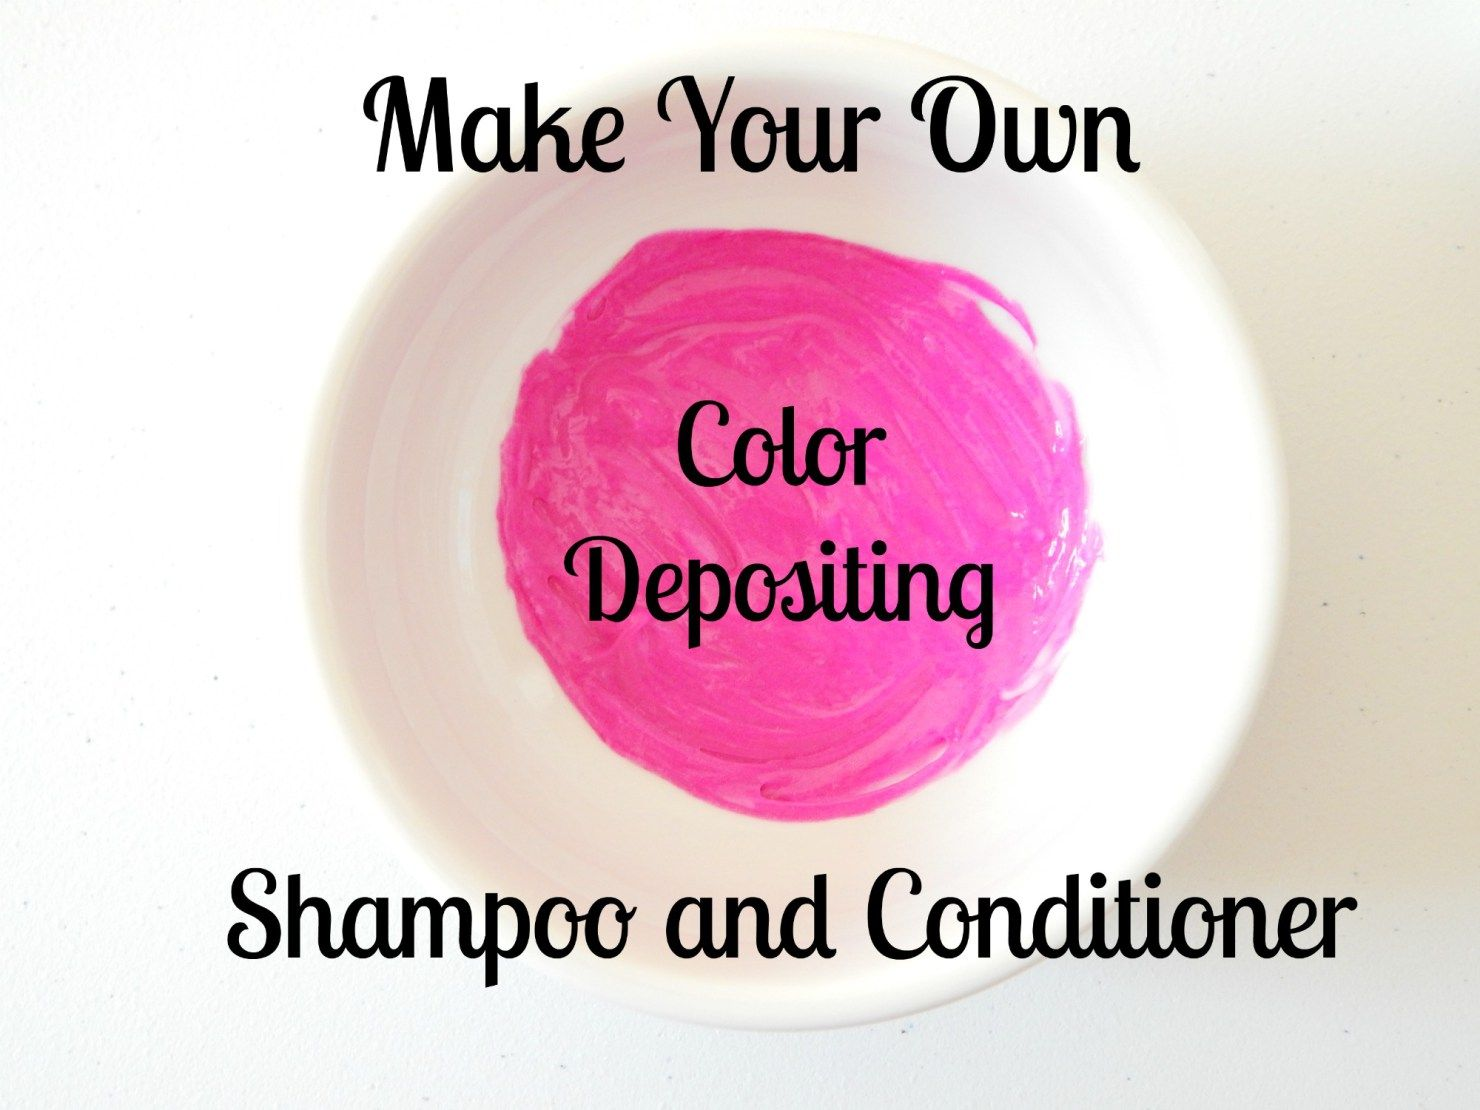 Make Your Own Color Depositing Shampoo And Conditioner With This Recipe Using Regular Hair Products And Color Depositing Shampoo Pink Hair Dye Hair Dye Shampoo